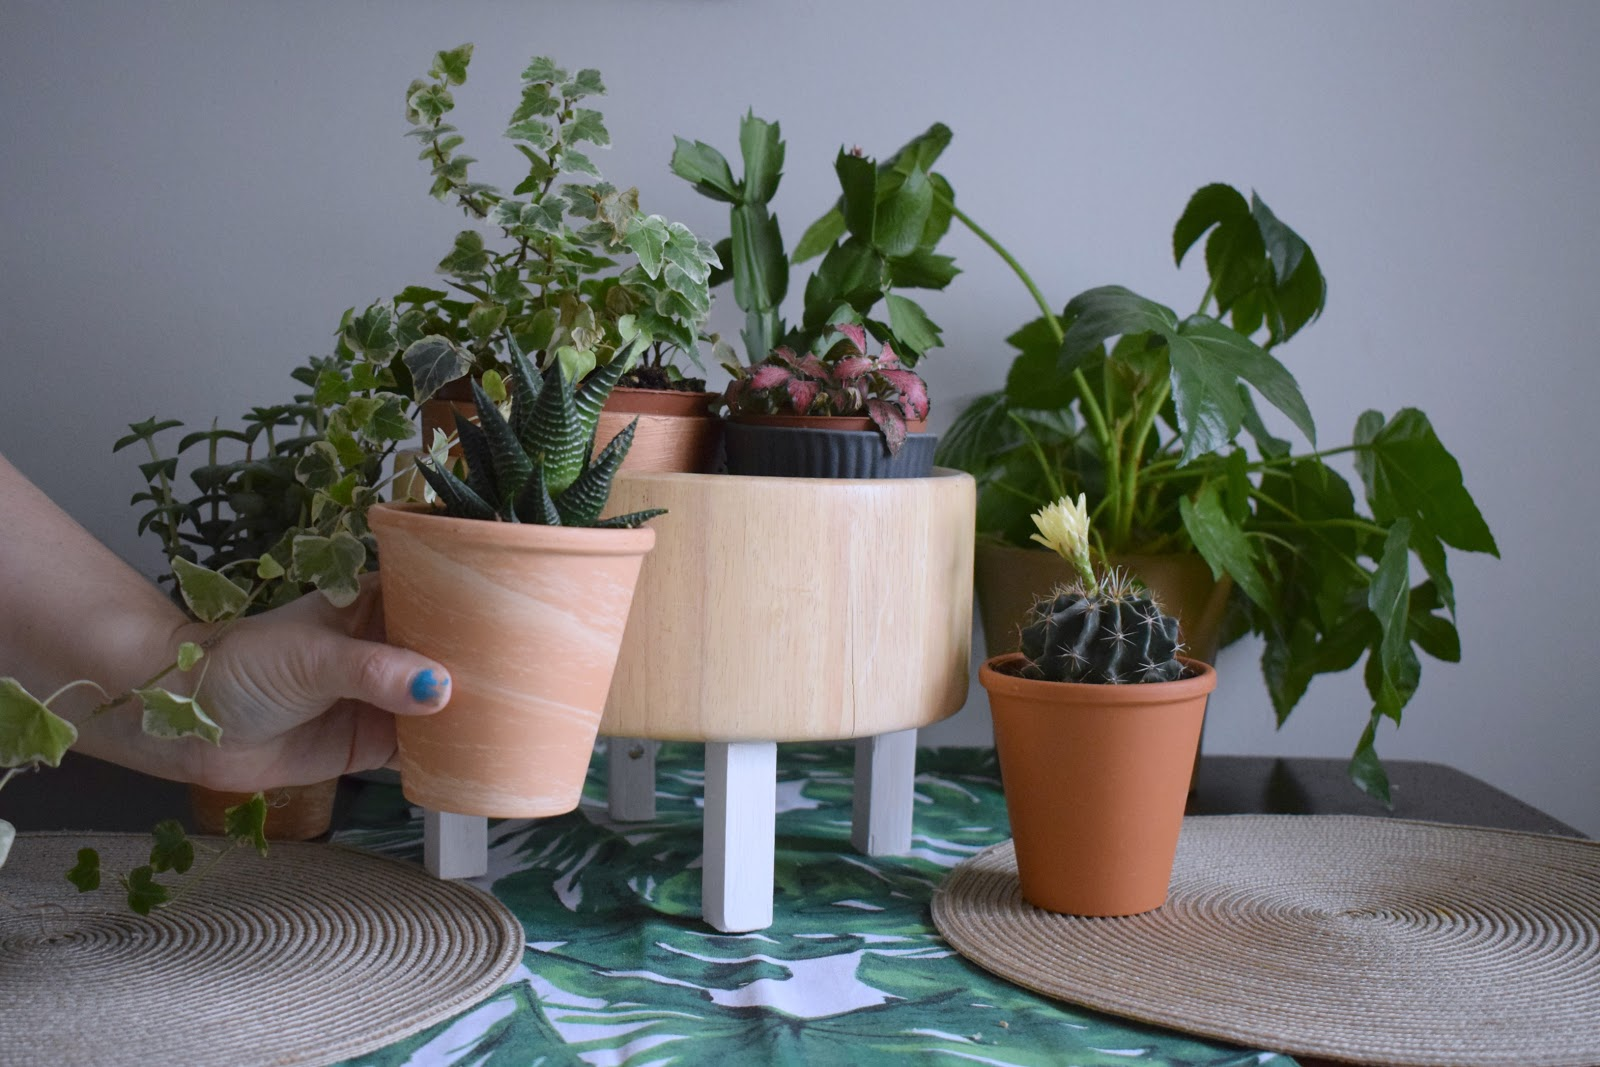 DIY How to make a simple plant pot stand